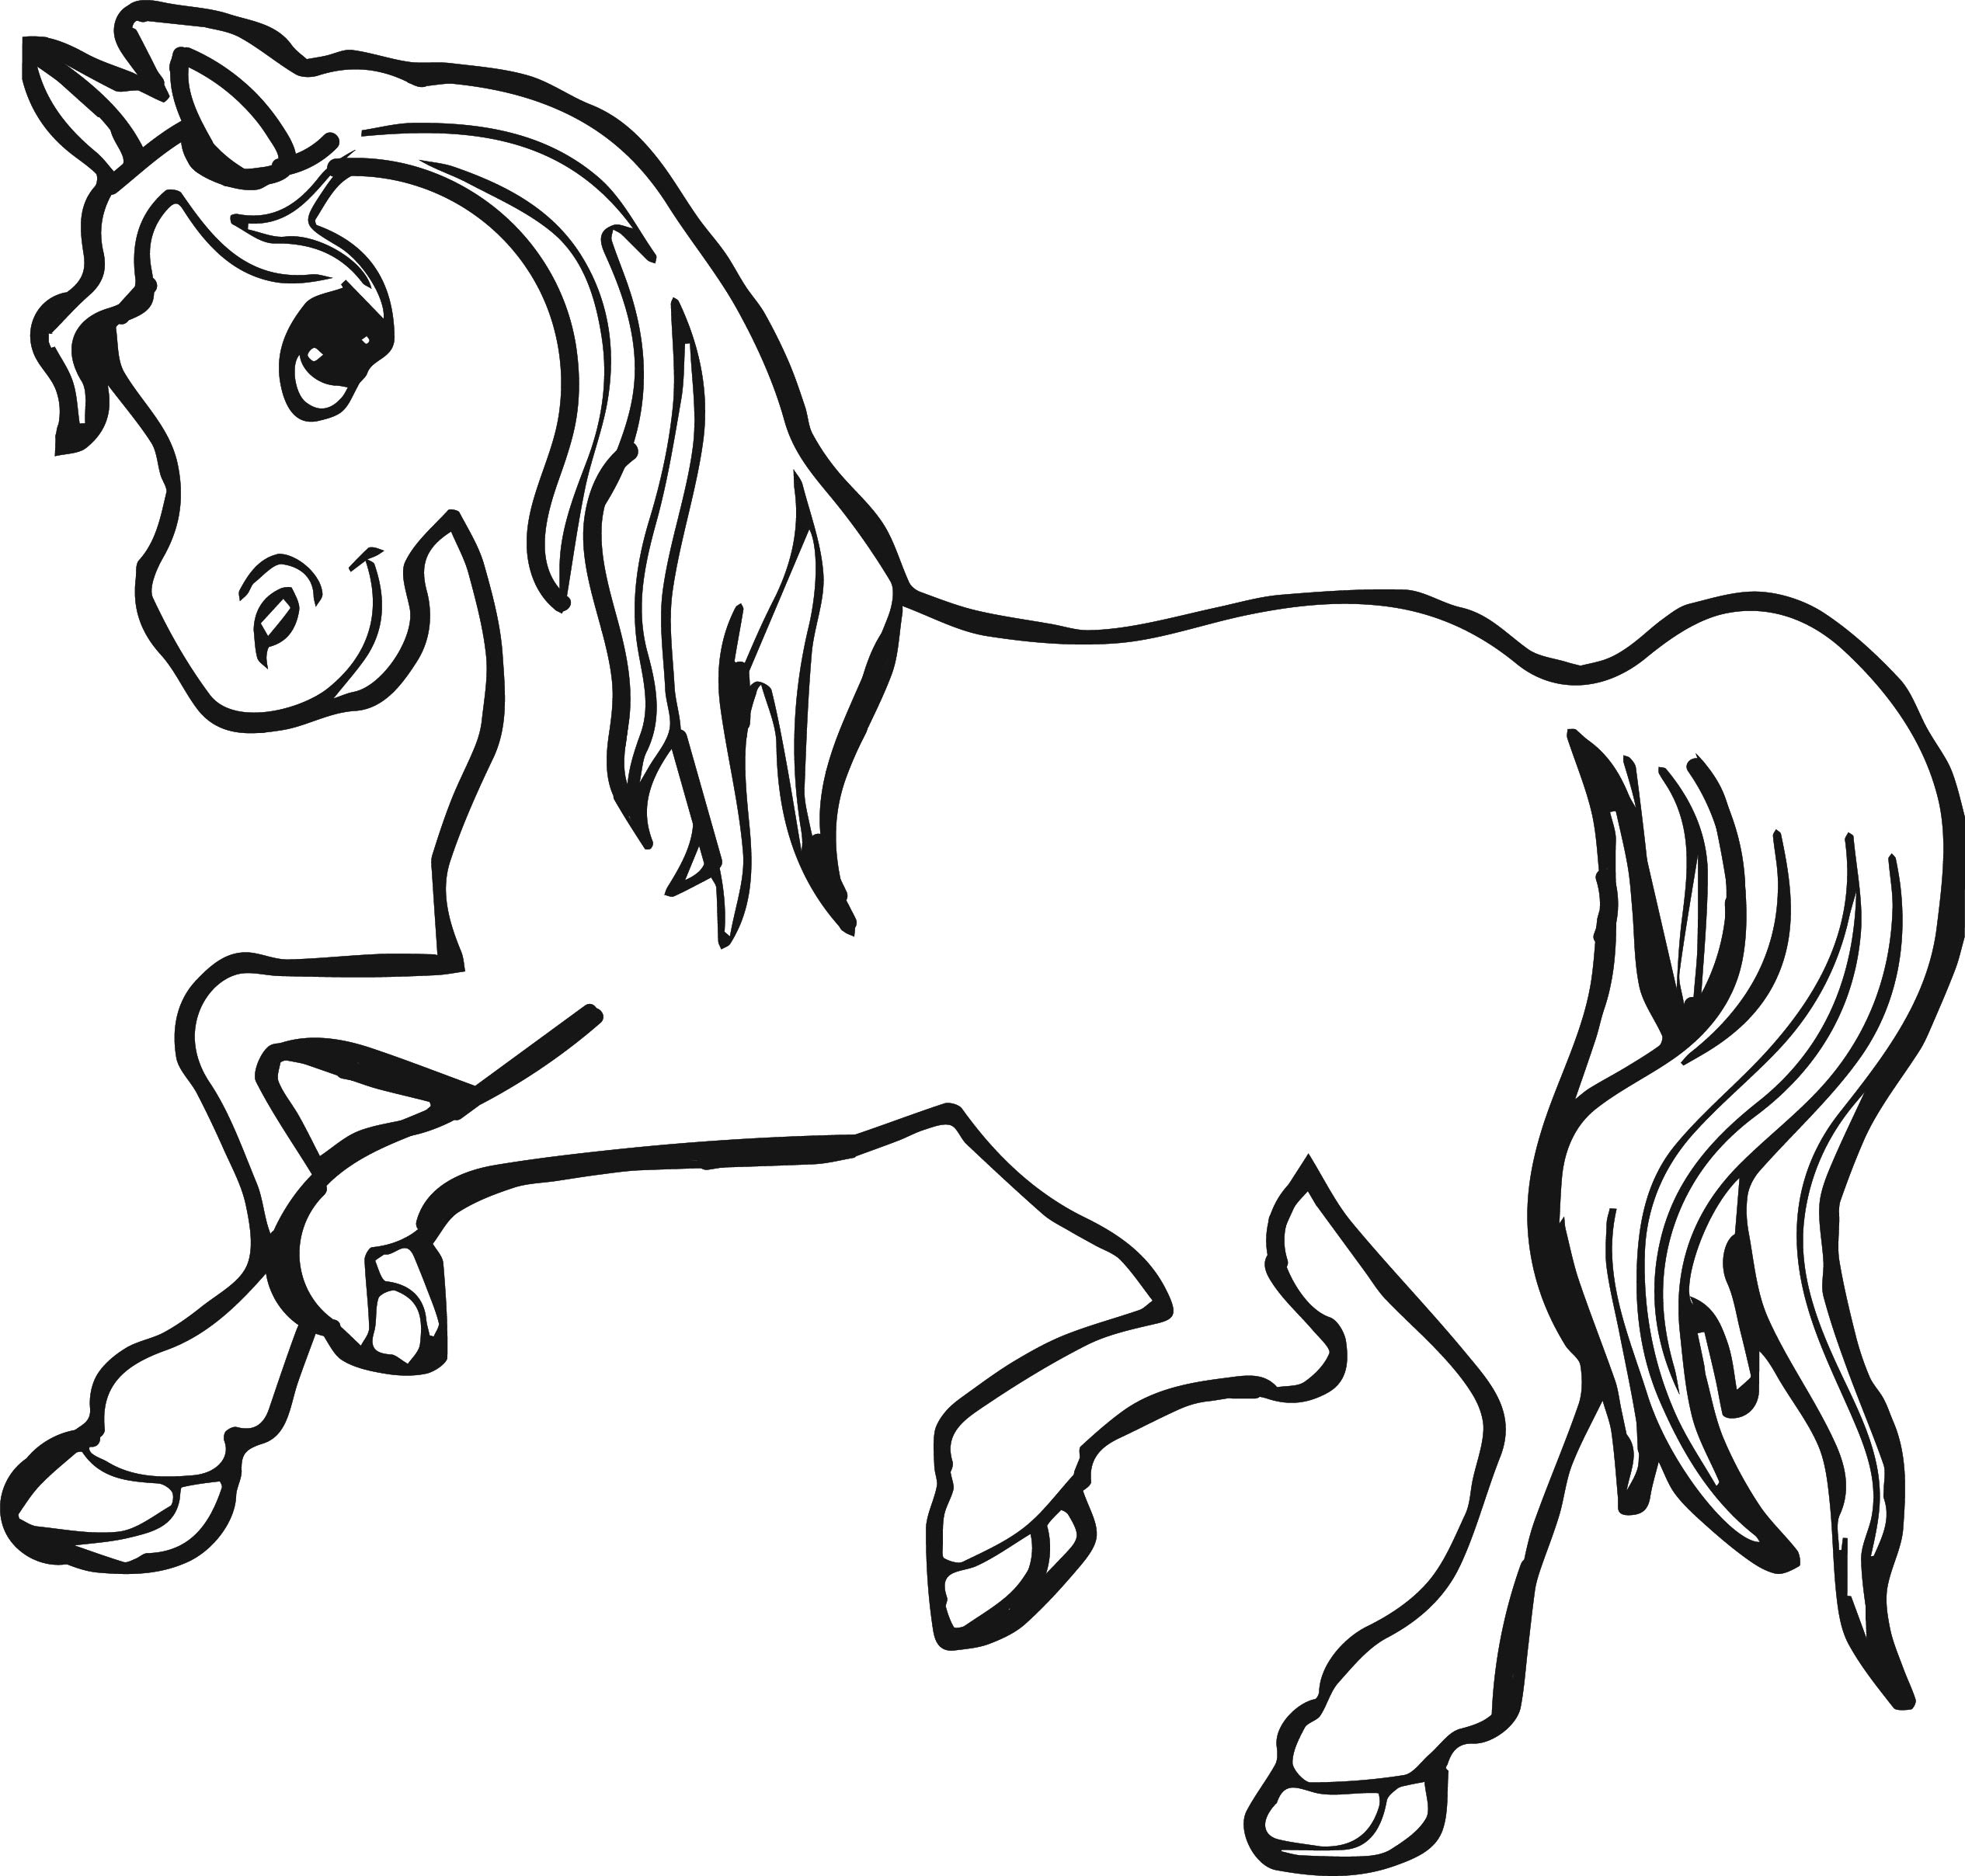 Coloring pictures of horse